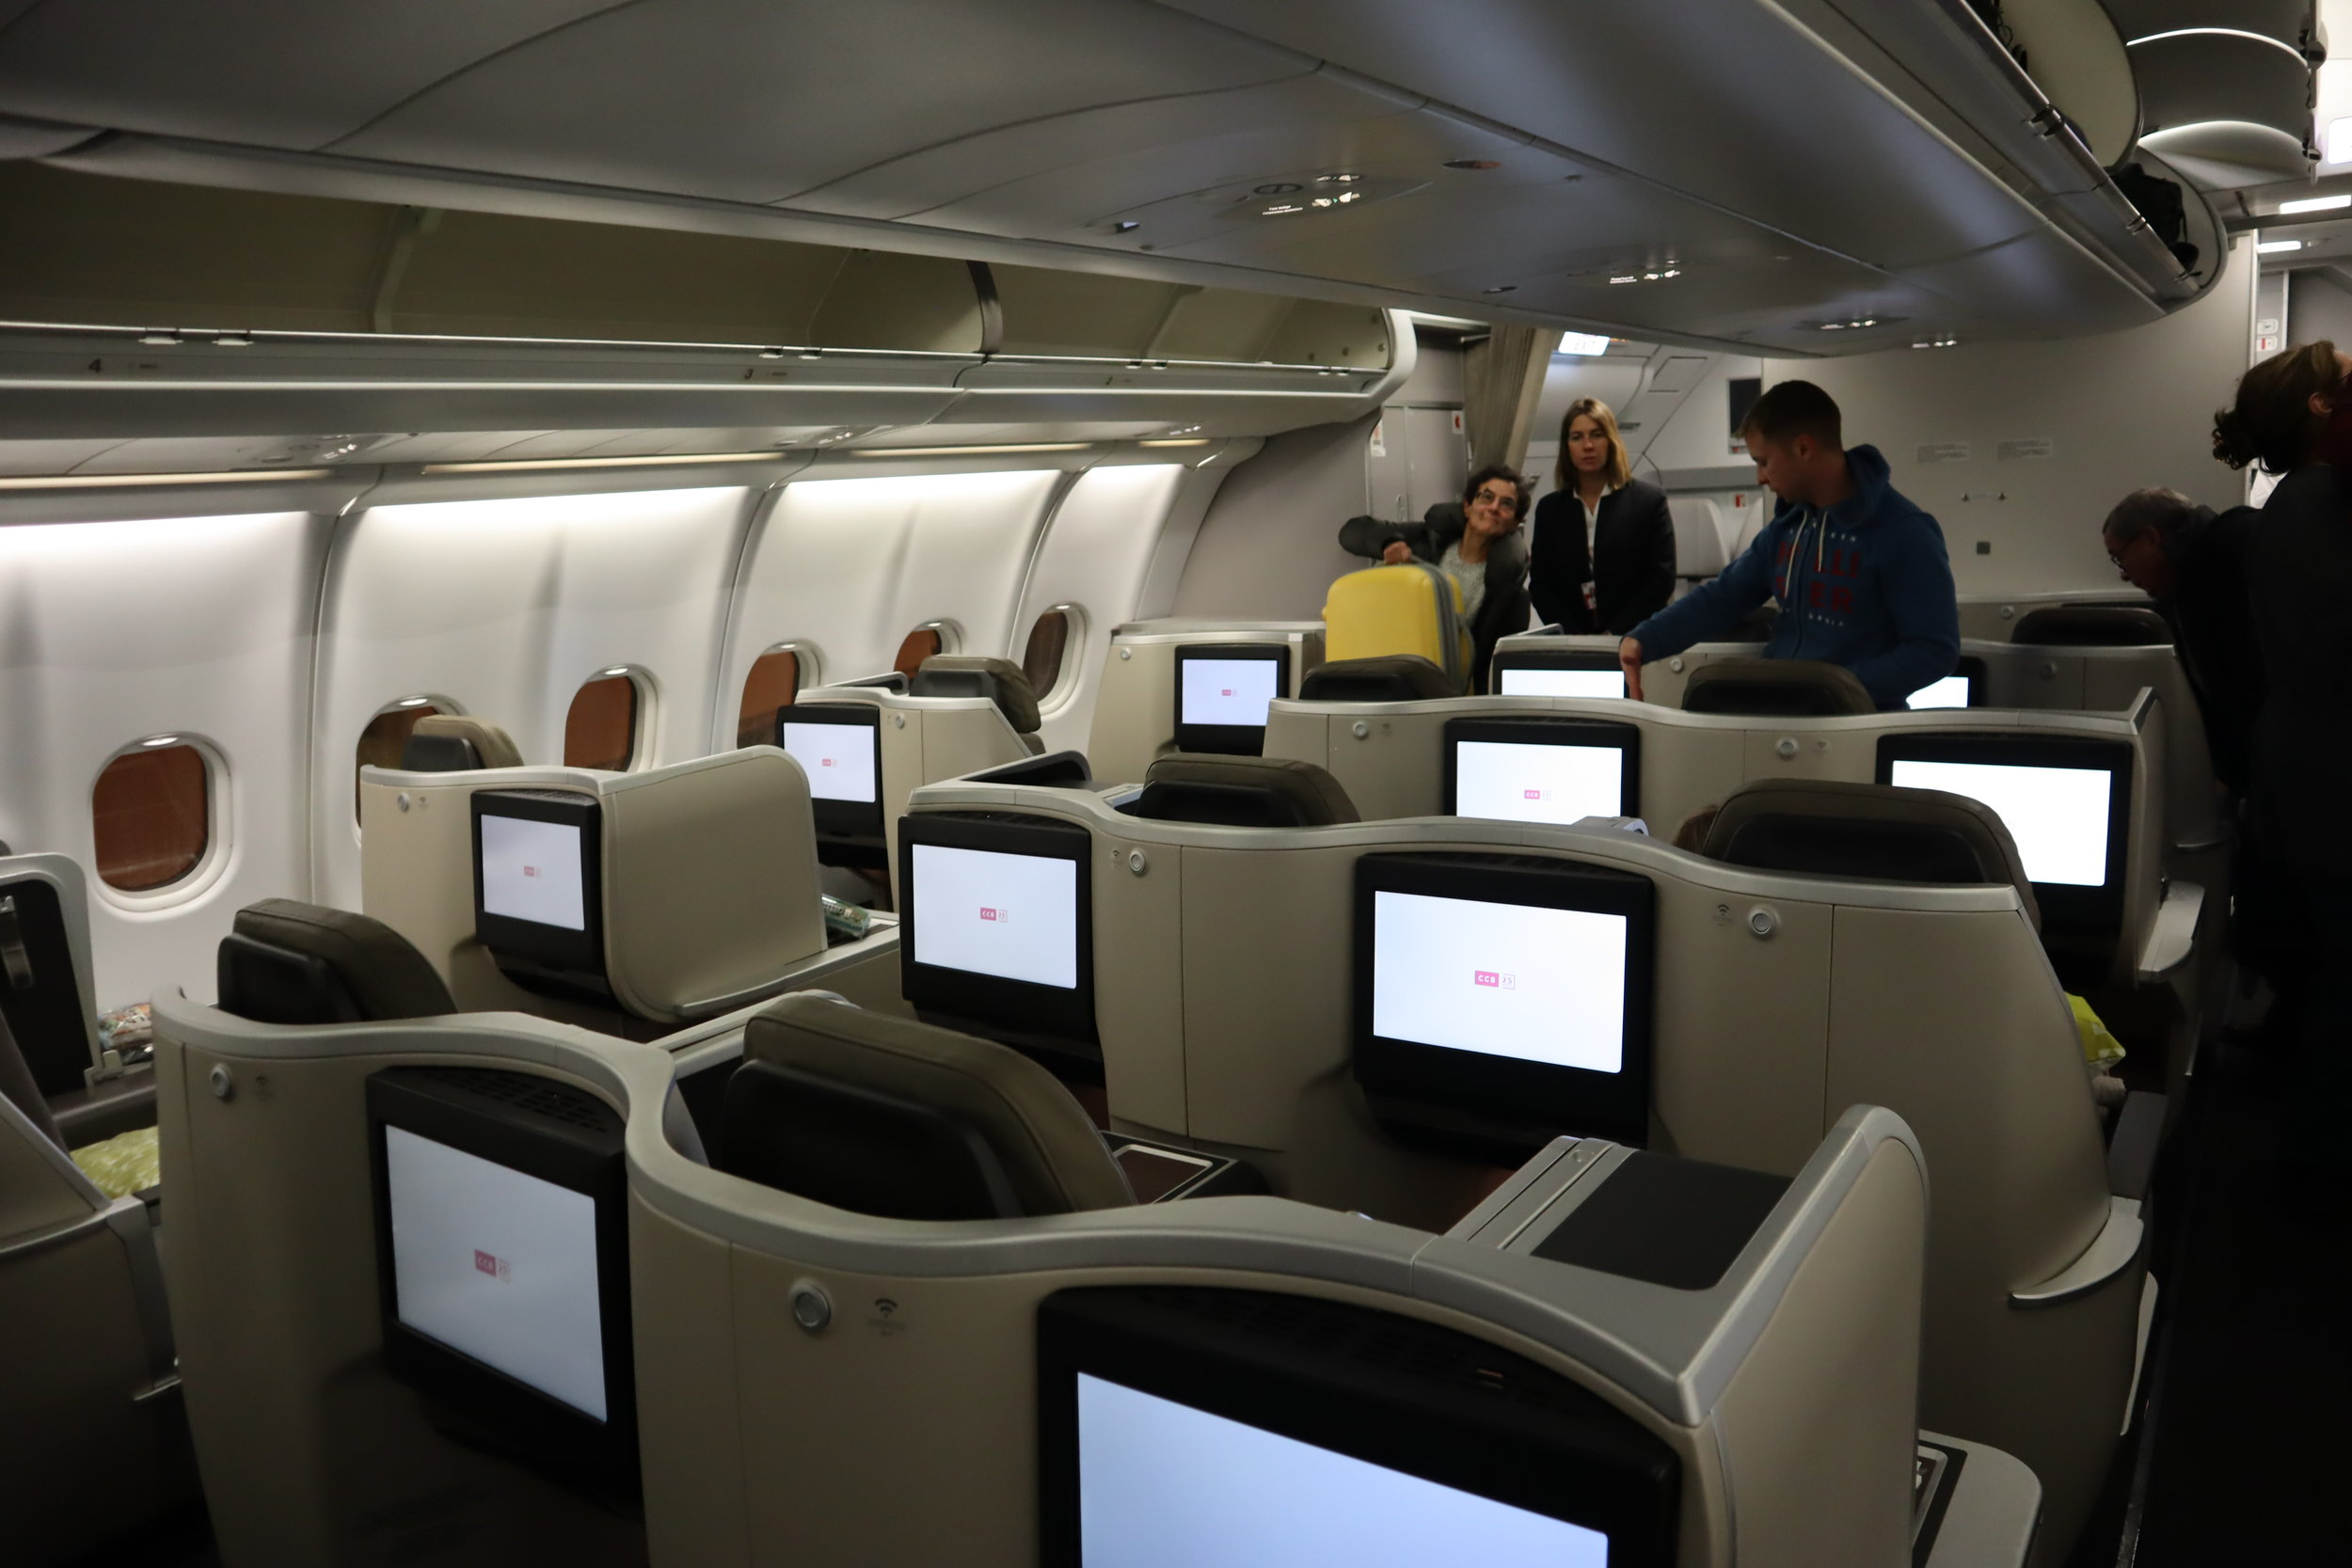 TAP Air Portugal business class – Cabin